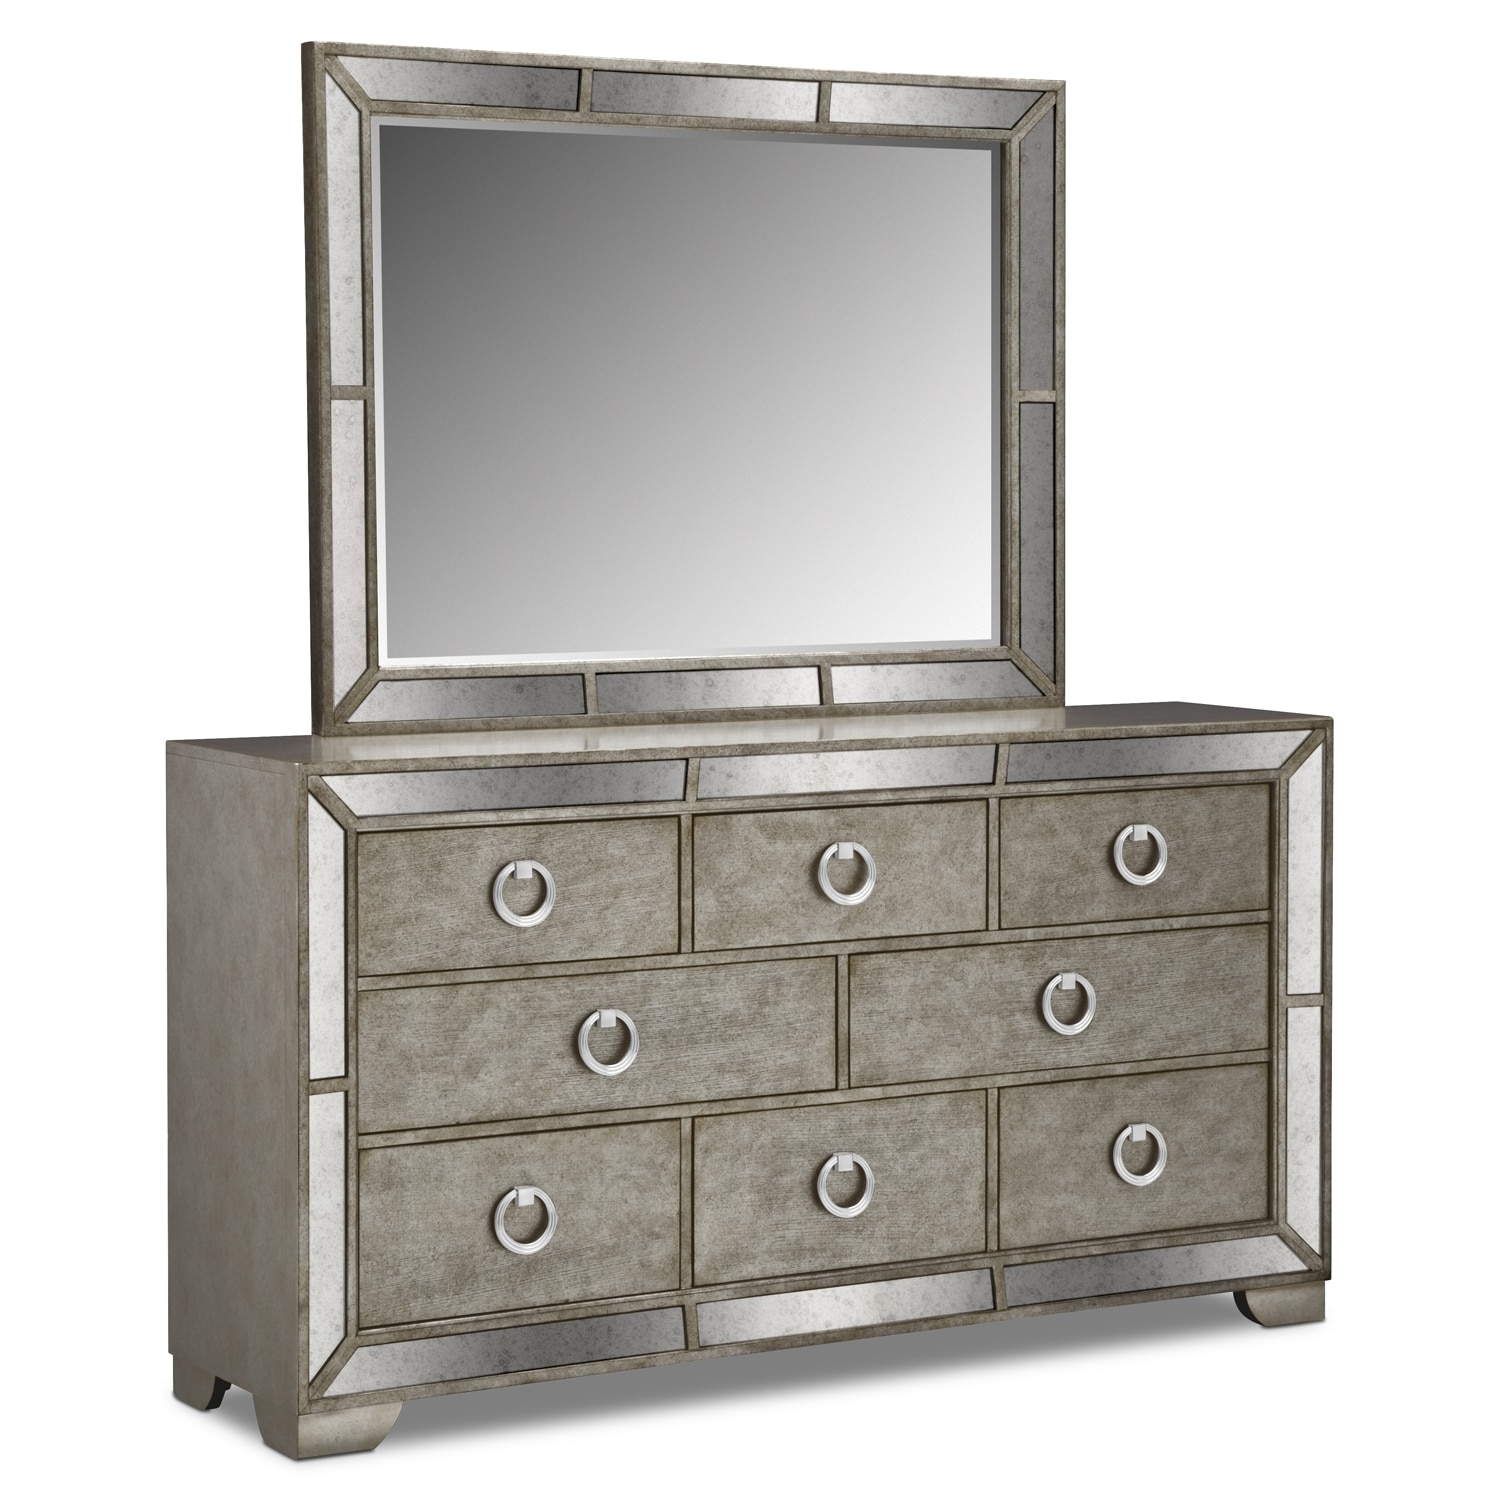 Blair Dresser Mirror